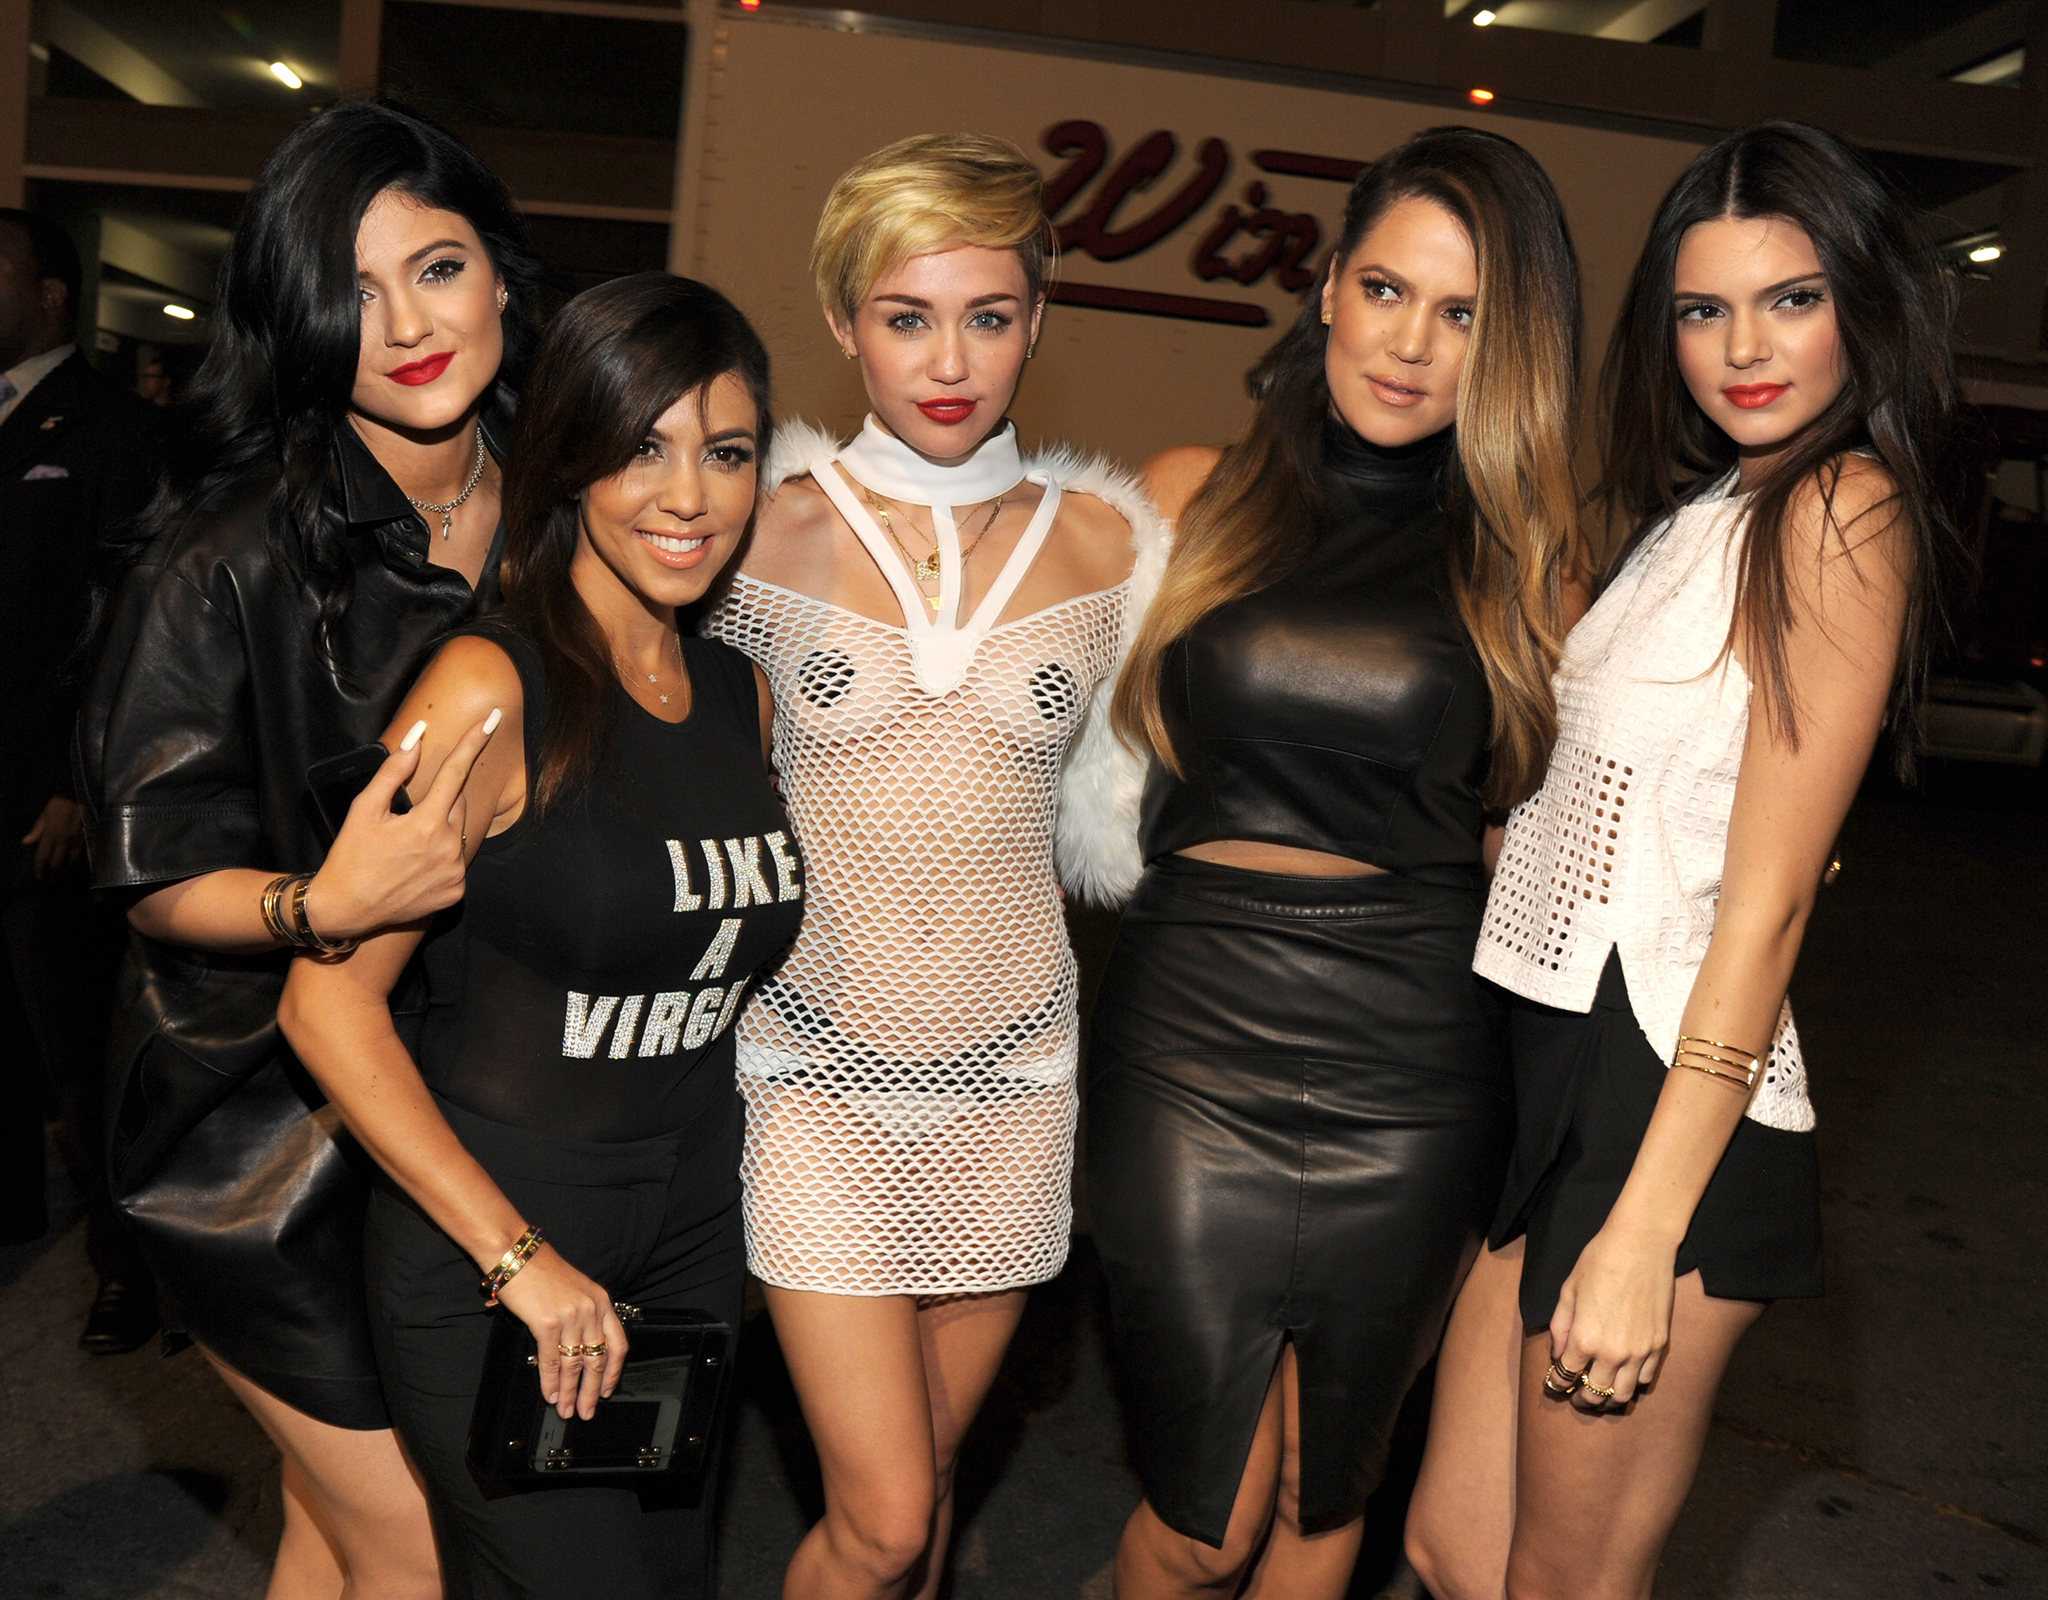 The Kardashian sisters pose with Miley Cyrus. (David Becker/Getty Images)